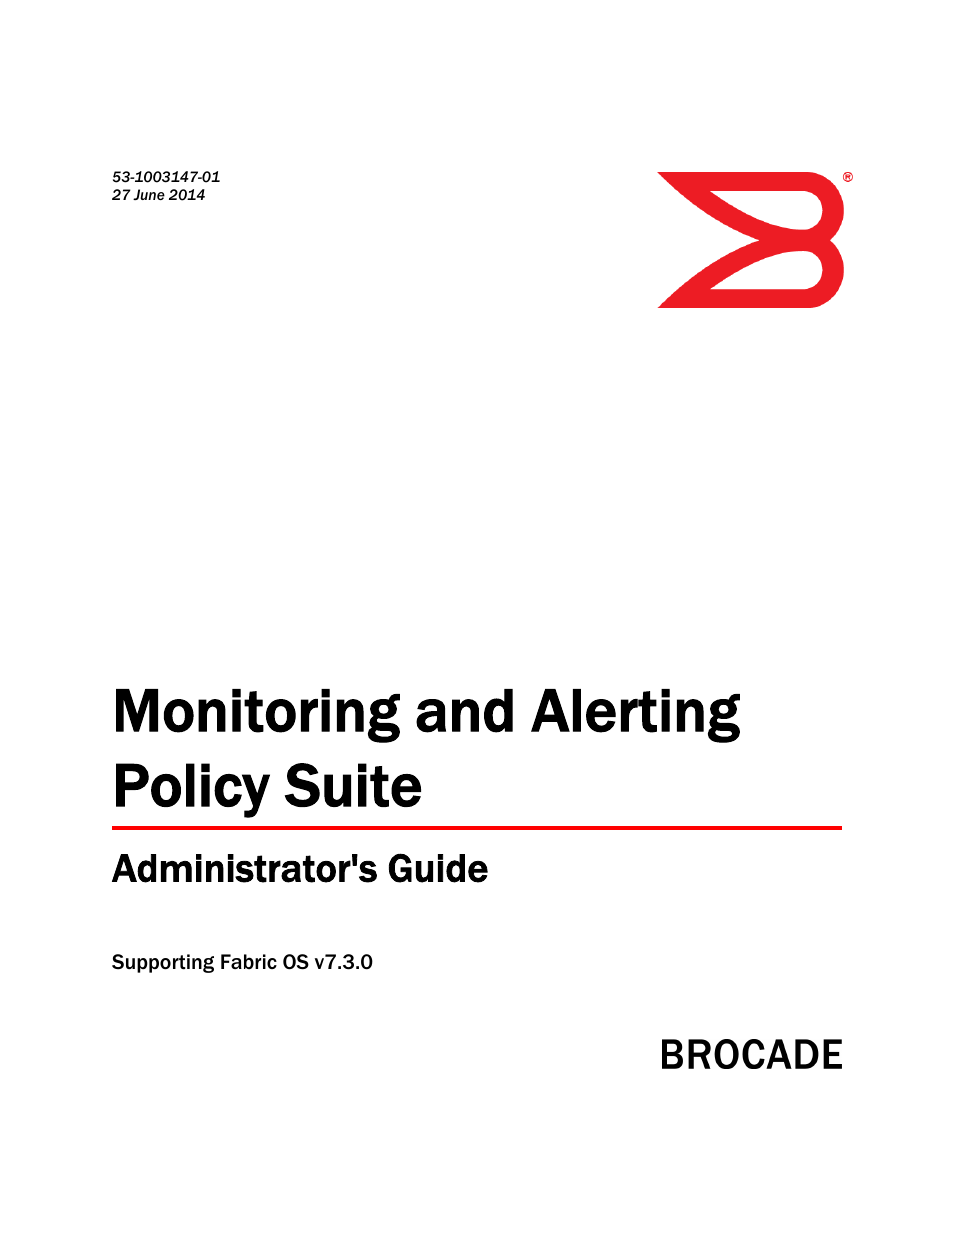 Brocade Monitoring and Alerting Policy Suite